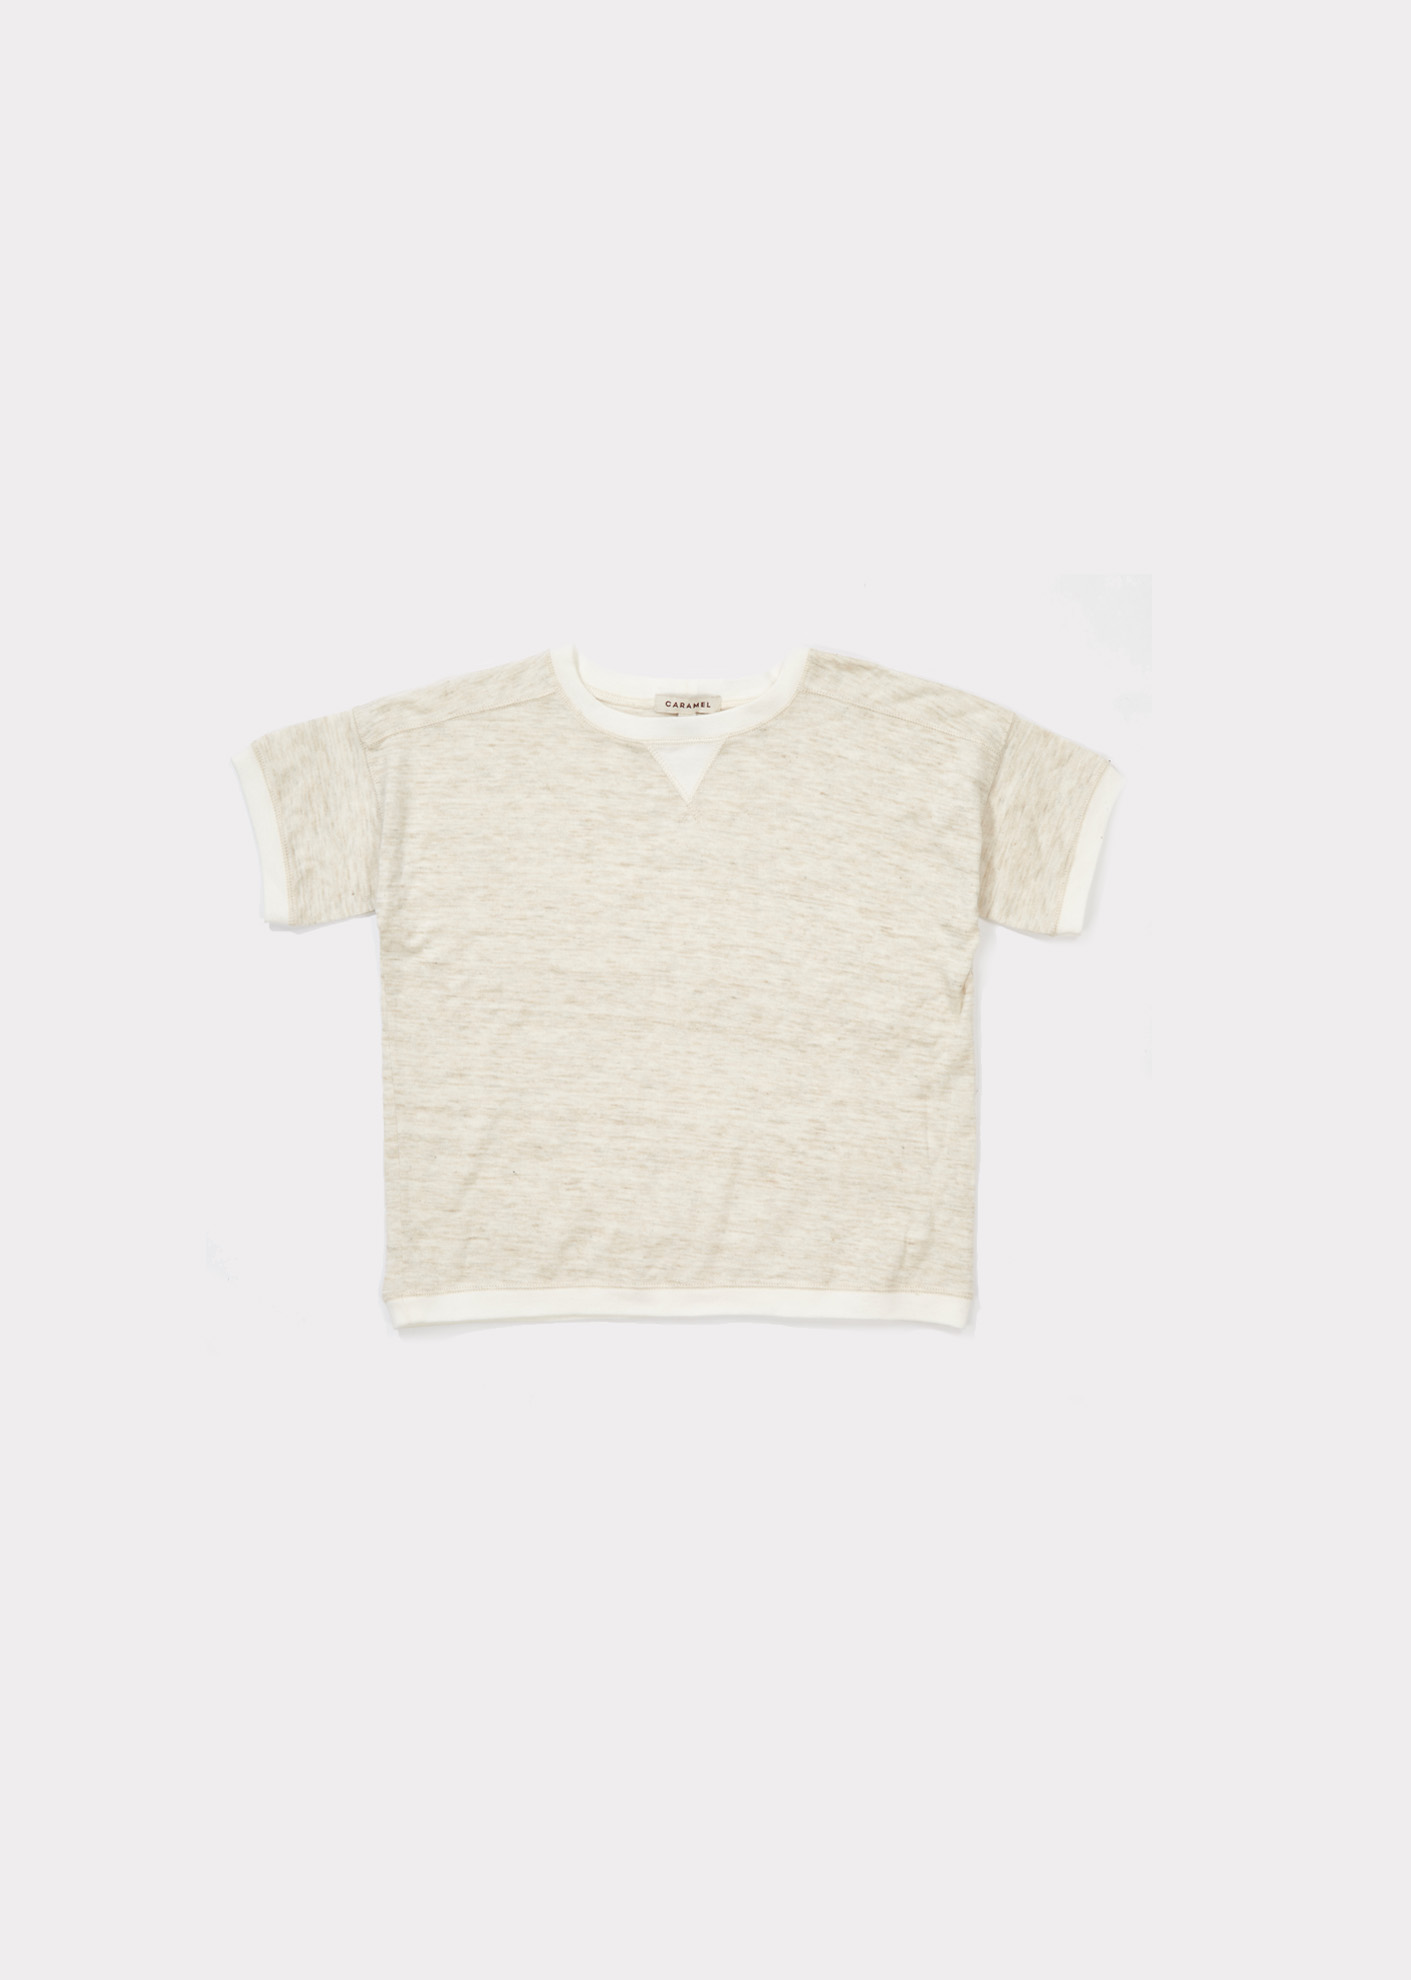 Caramel  - KEZAR T-SHIRT OATMEAL - Clothing